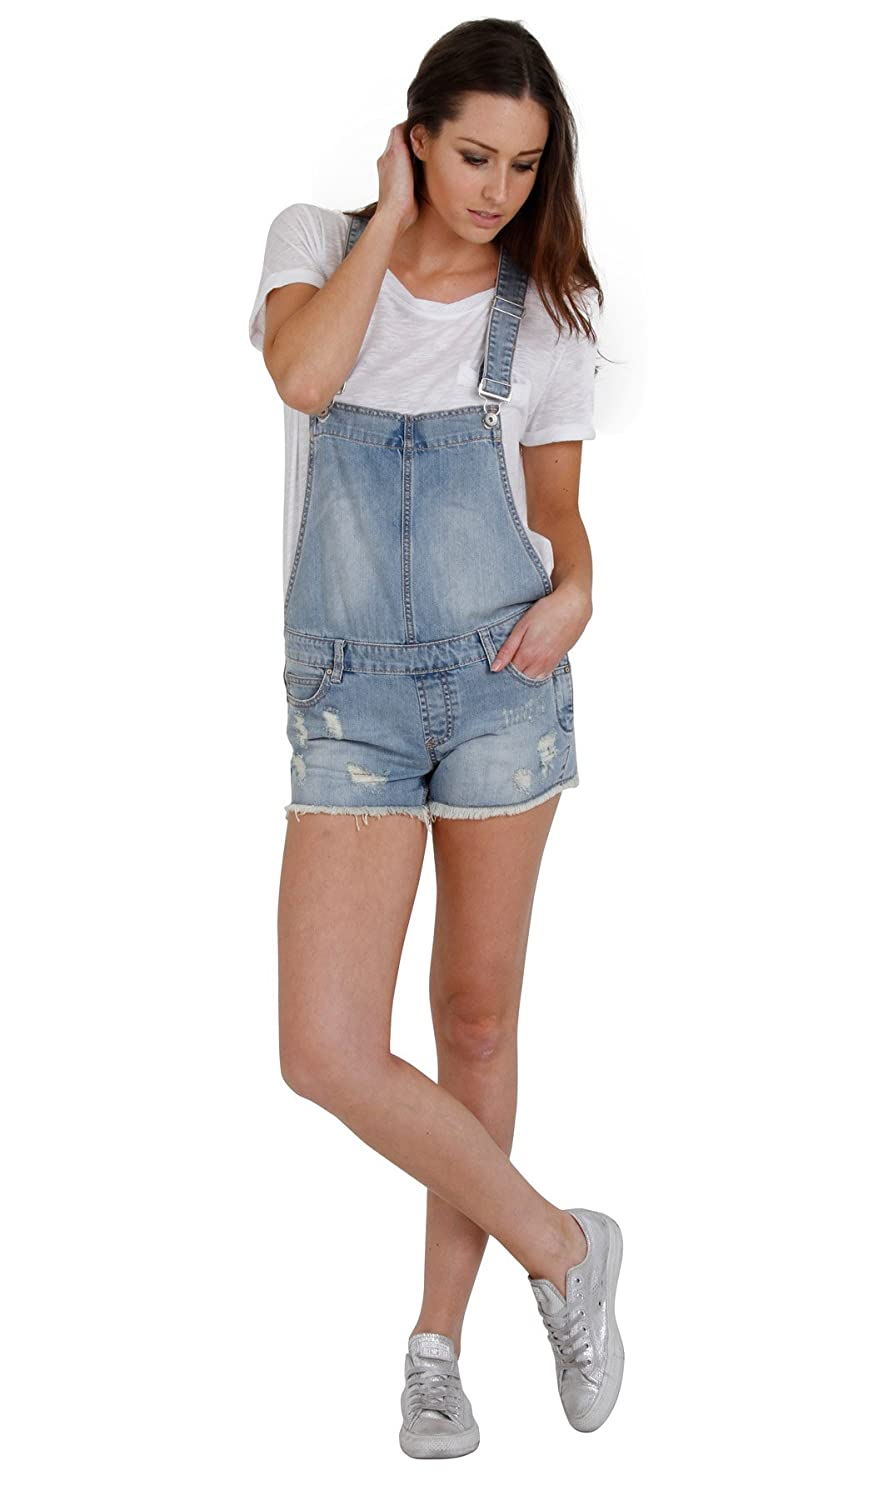 Dungaree Shorts in Faded Destroyed Denim Ladies Denim Bib Overall Short  Shortall WOM111: Amazon.co.uk: Clothing